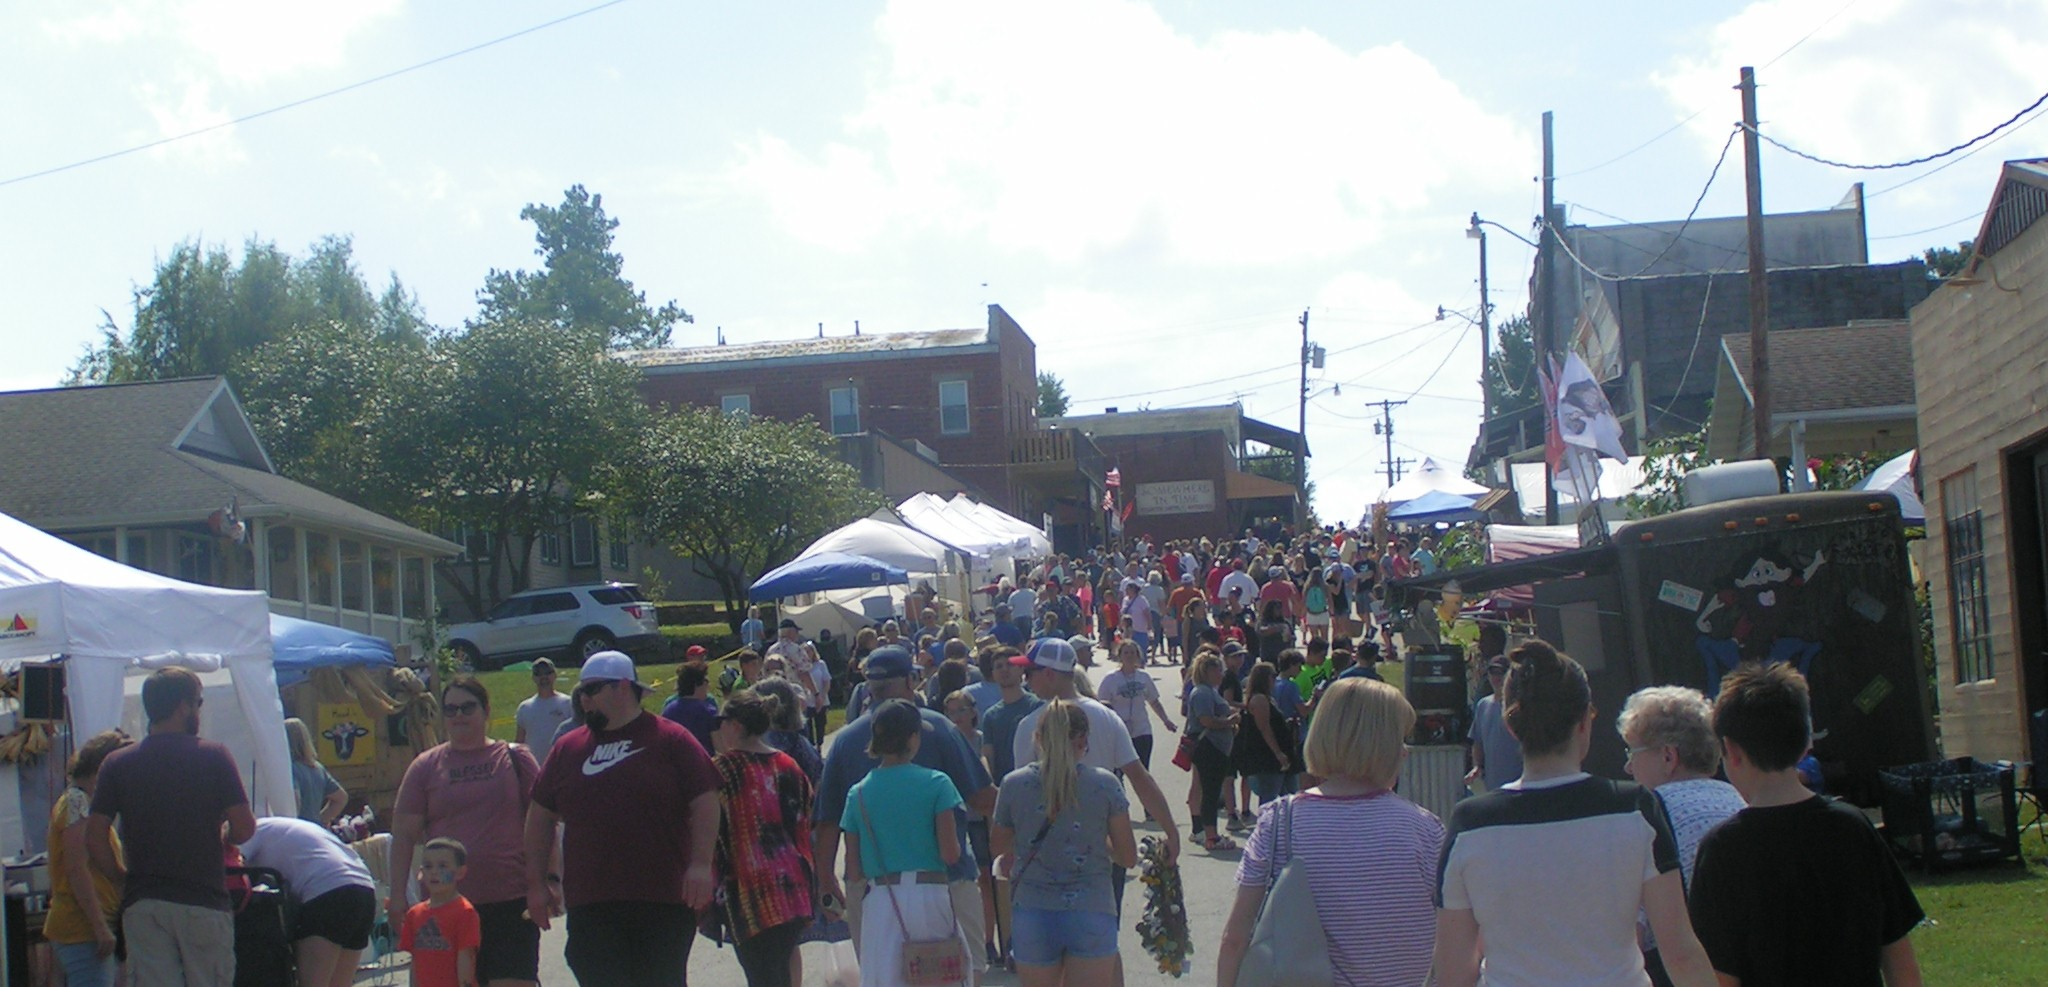 View of the Main Street during the Reunion